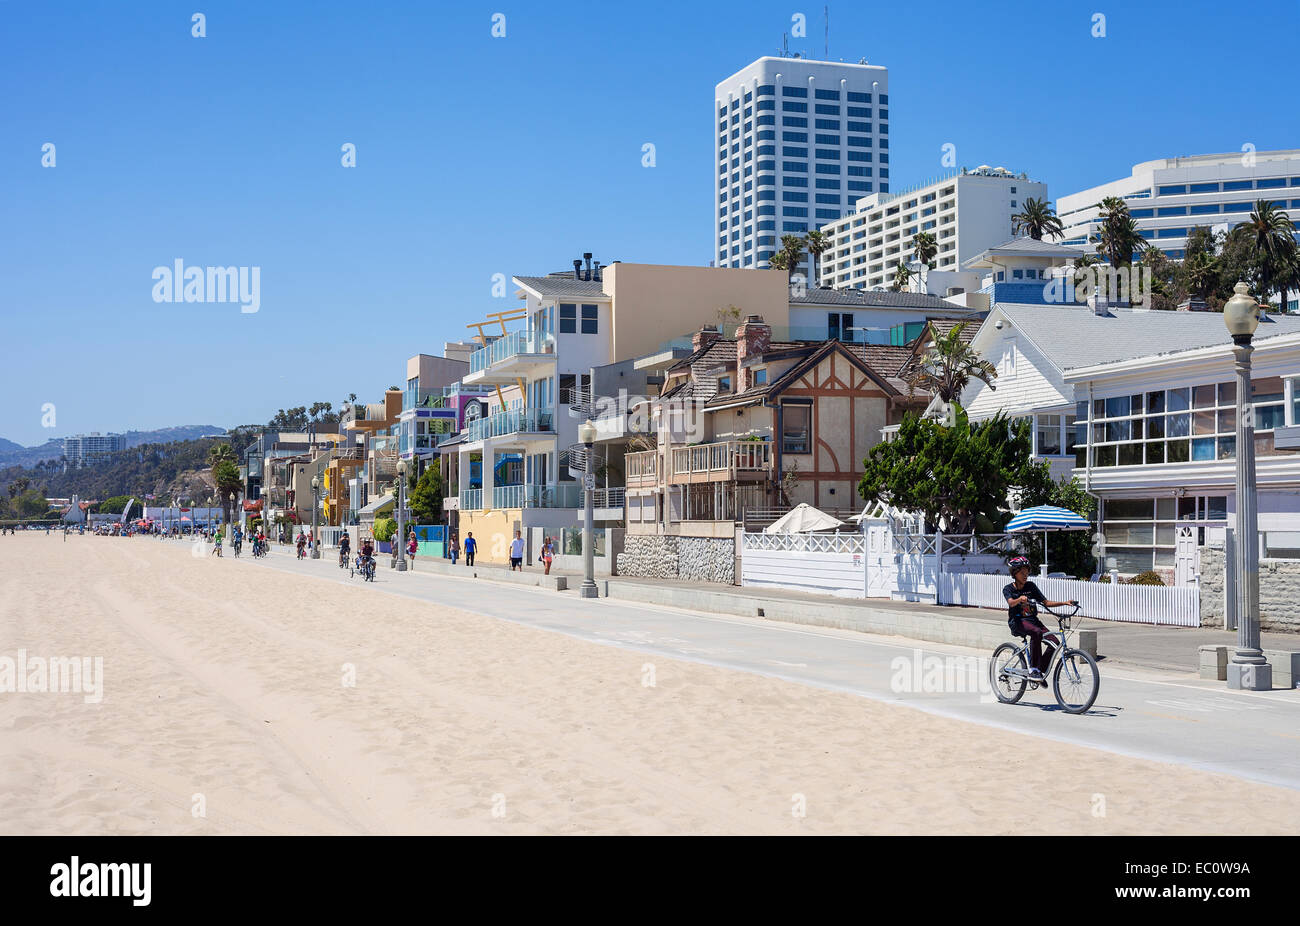 Santa Monica beach houses along the boardwalk, Santa Monica California USA Stock Photo